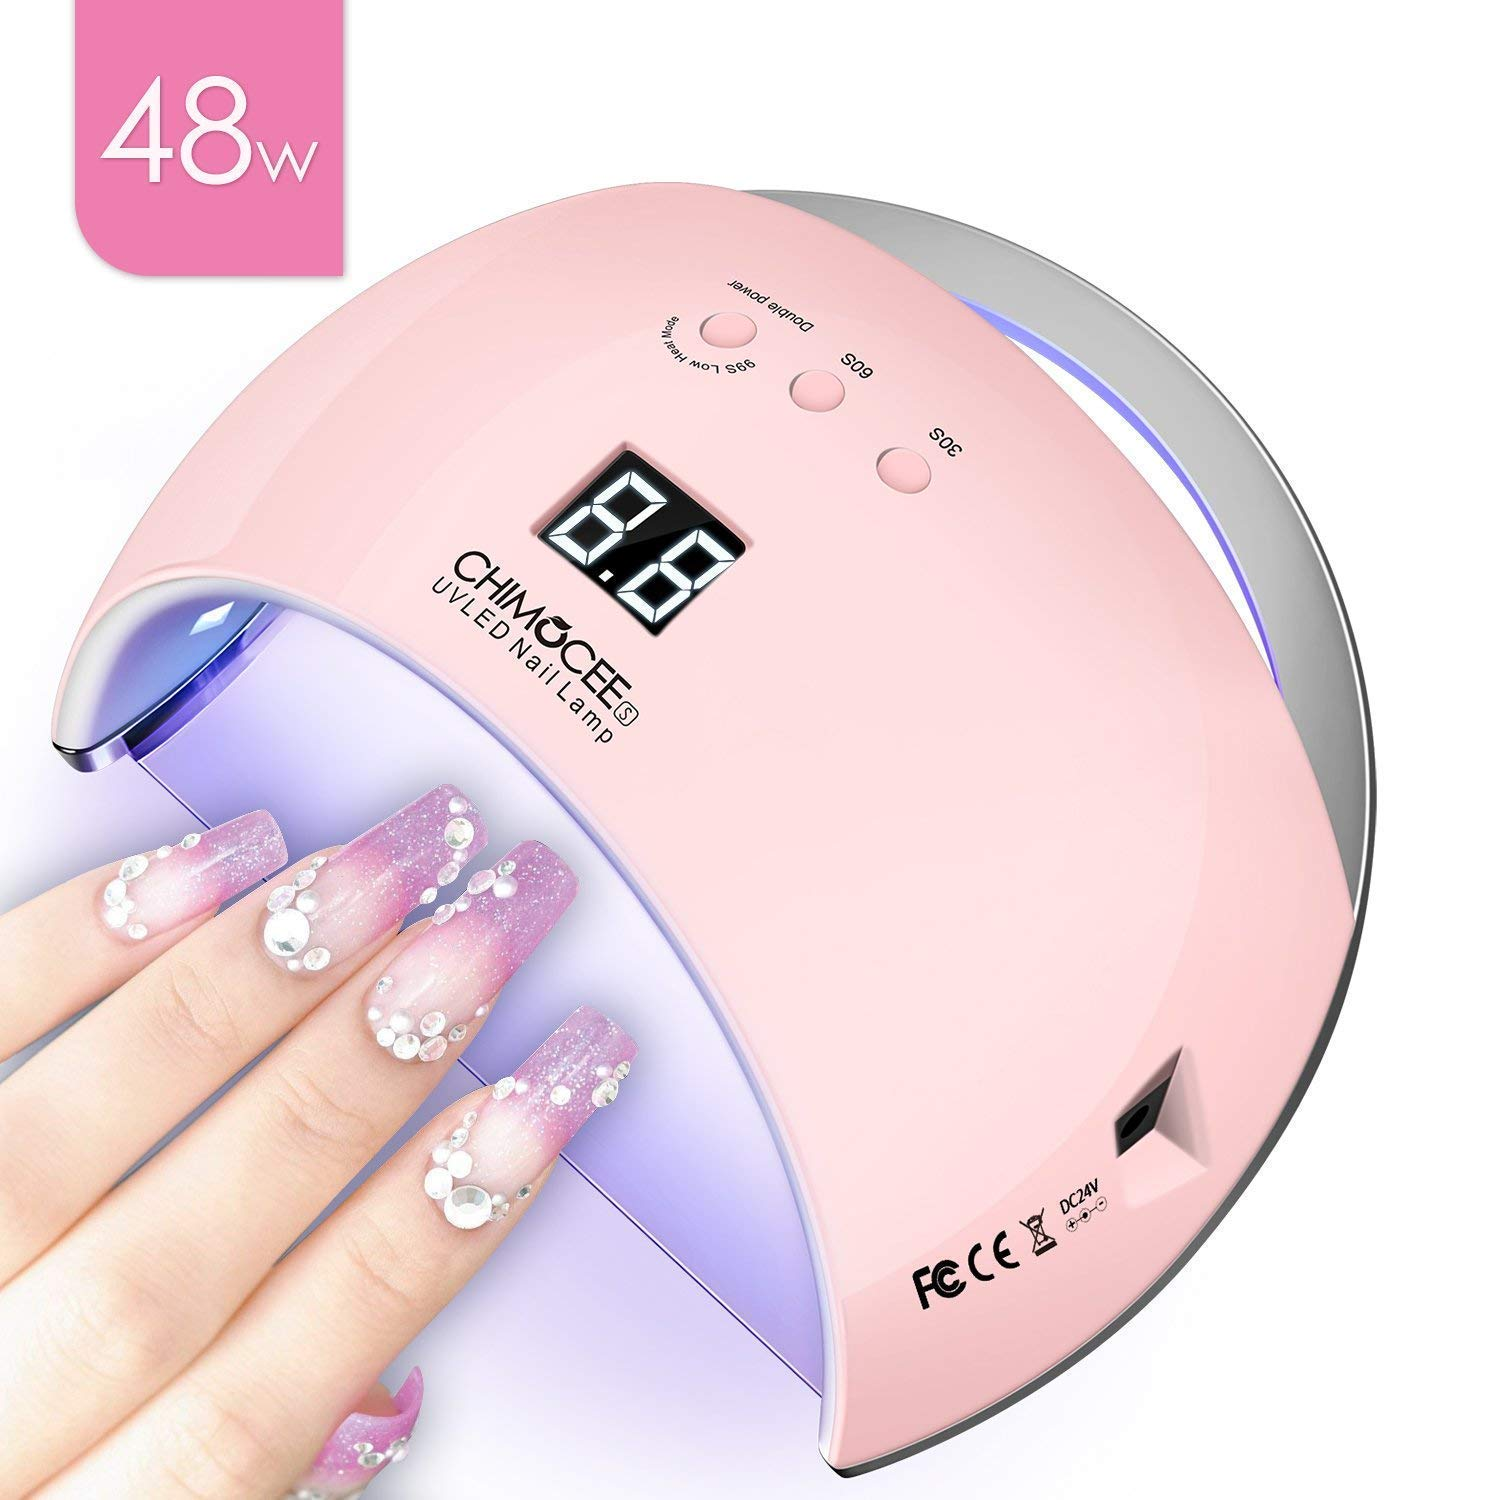 c01d15d5c48 48W UV Led Nail Dryer, CHIMOCEE Smart Curing Lamp, Auto Sensor Nail Gel  Polish Dryer With 4 Timer Setting, Professional For All Brand Type (Pink)